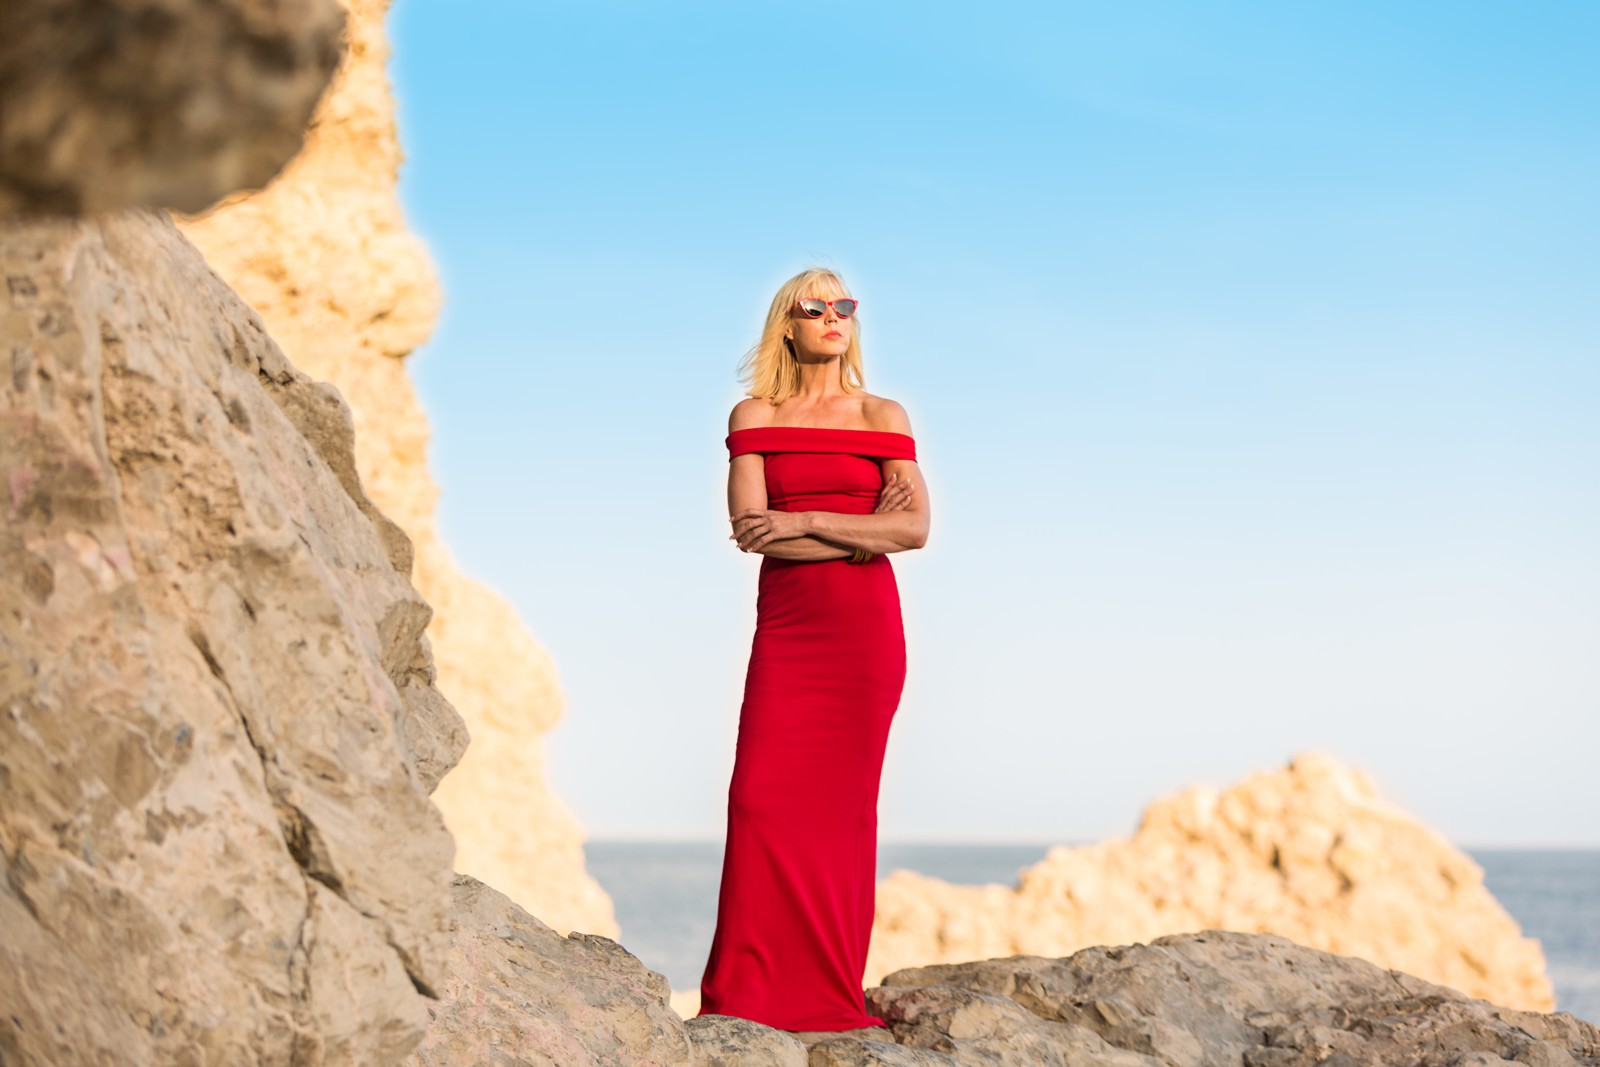 CatherineGraceO Standing on Cliffs in Red Dress